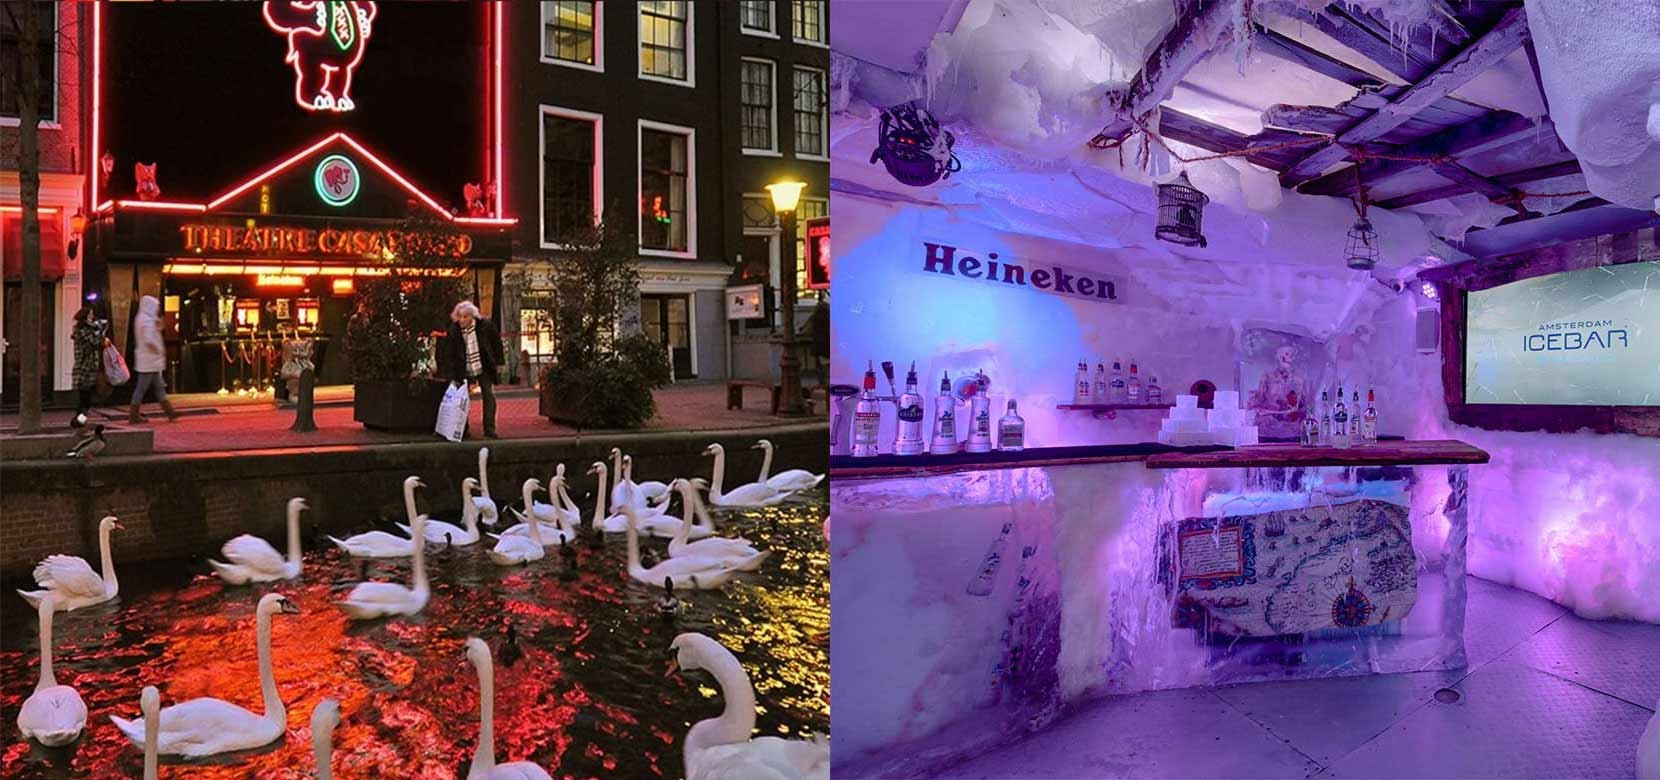 Xtracold Icebar + Casa Rosso including 2 drinks